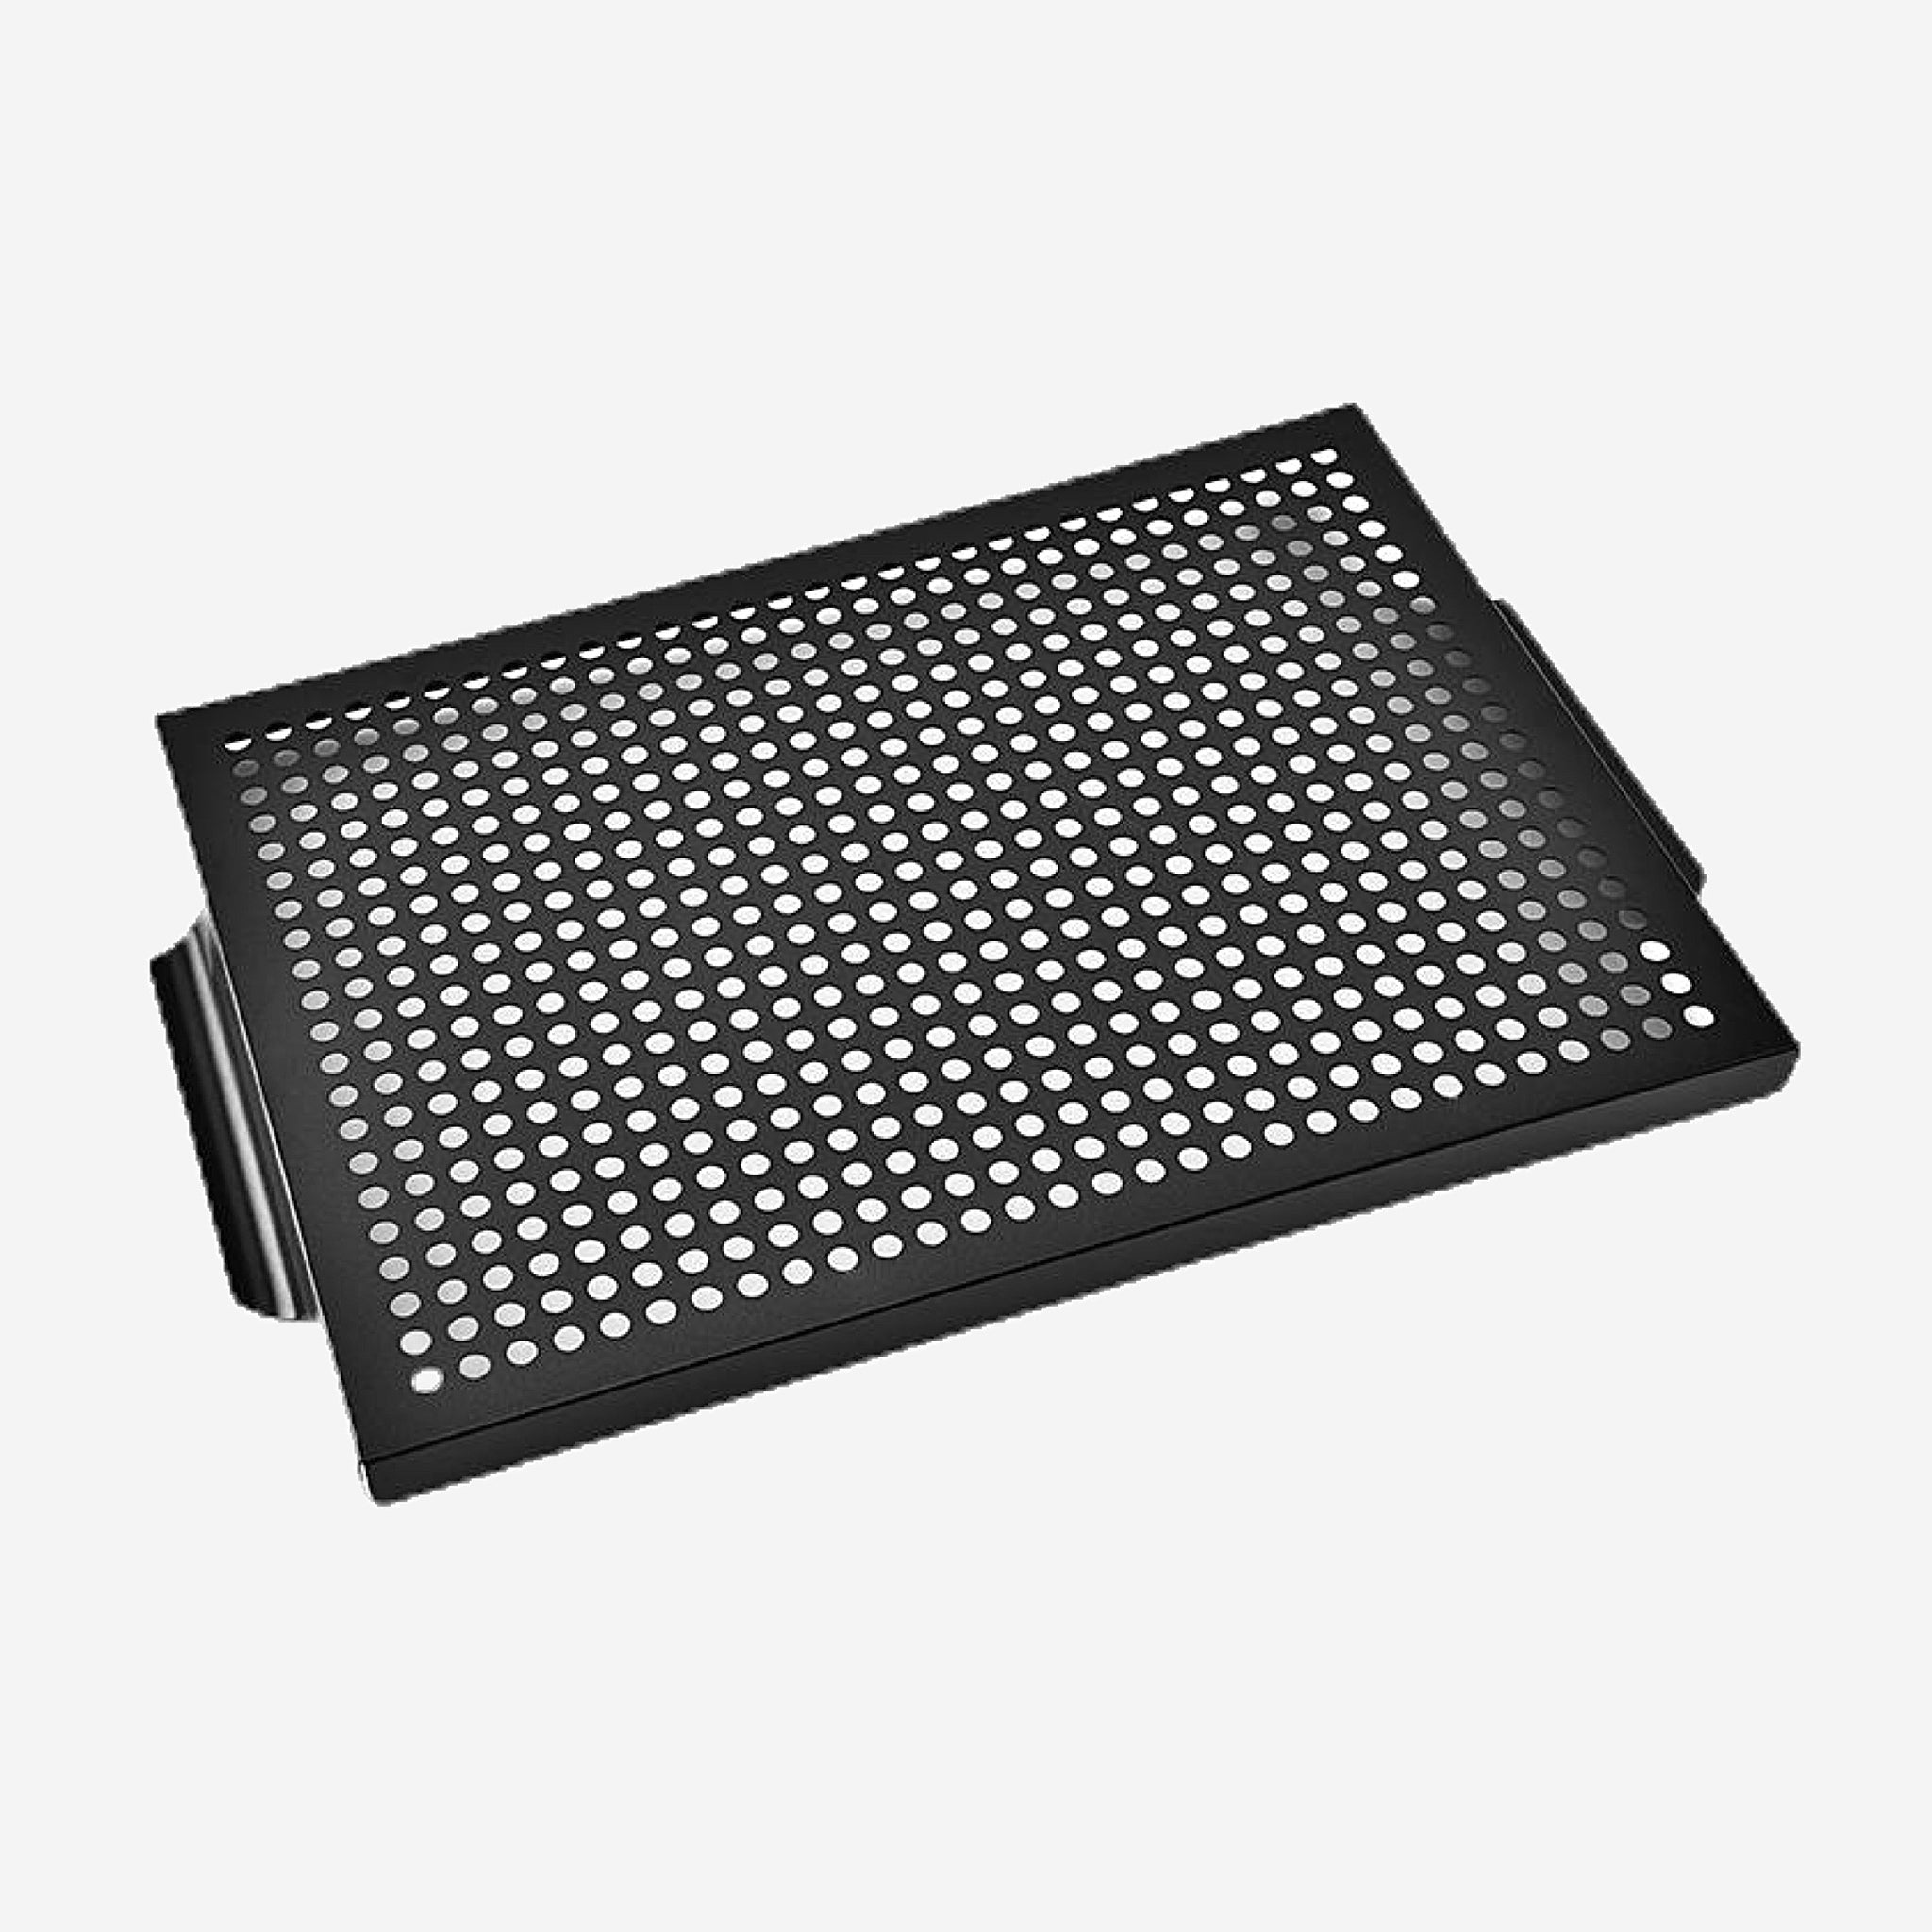 Nonstick Grill Pan Rectangle Barbecue Vegetable Bakset Cooking Tray BBQ Plate for Outdoor Camping Picnic